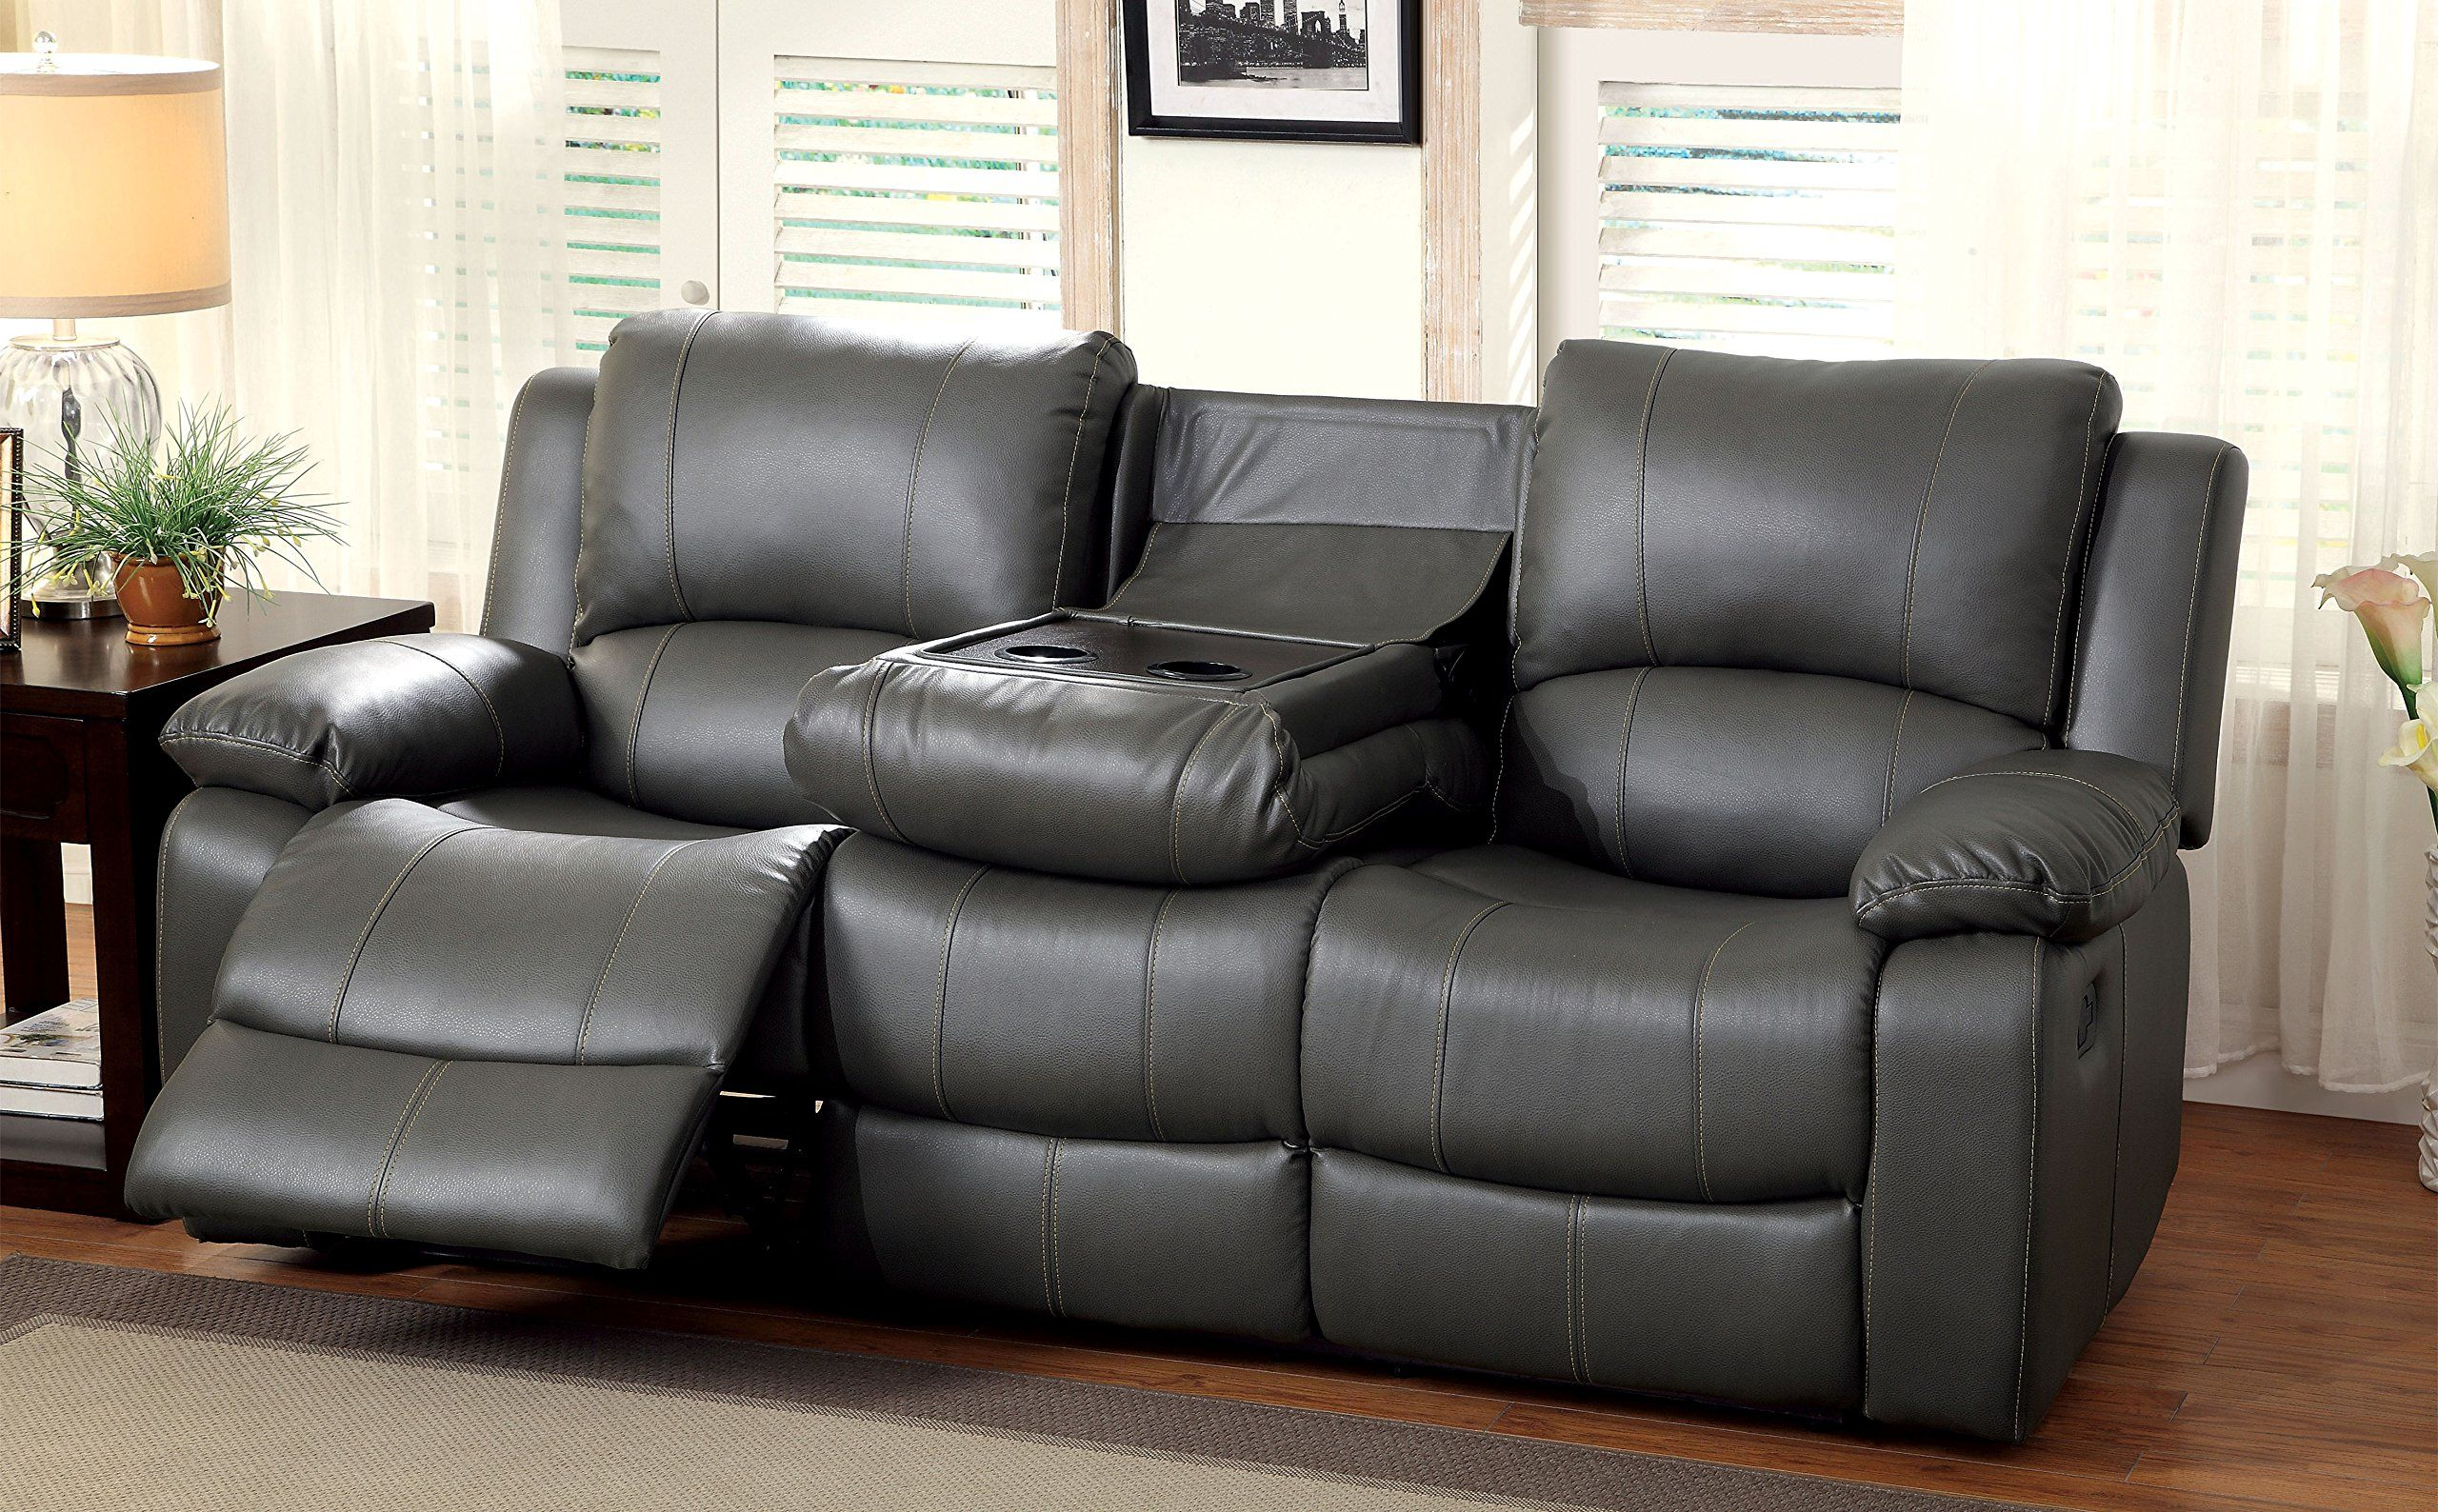 Furniture Of America Robyn 2 Recliner Sofa Contemporary Style